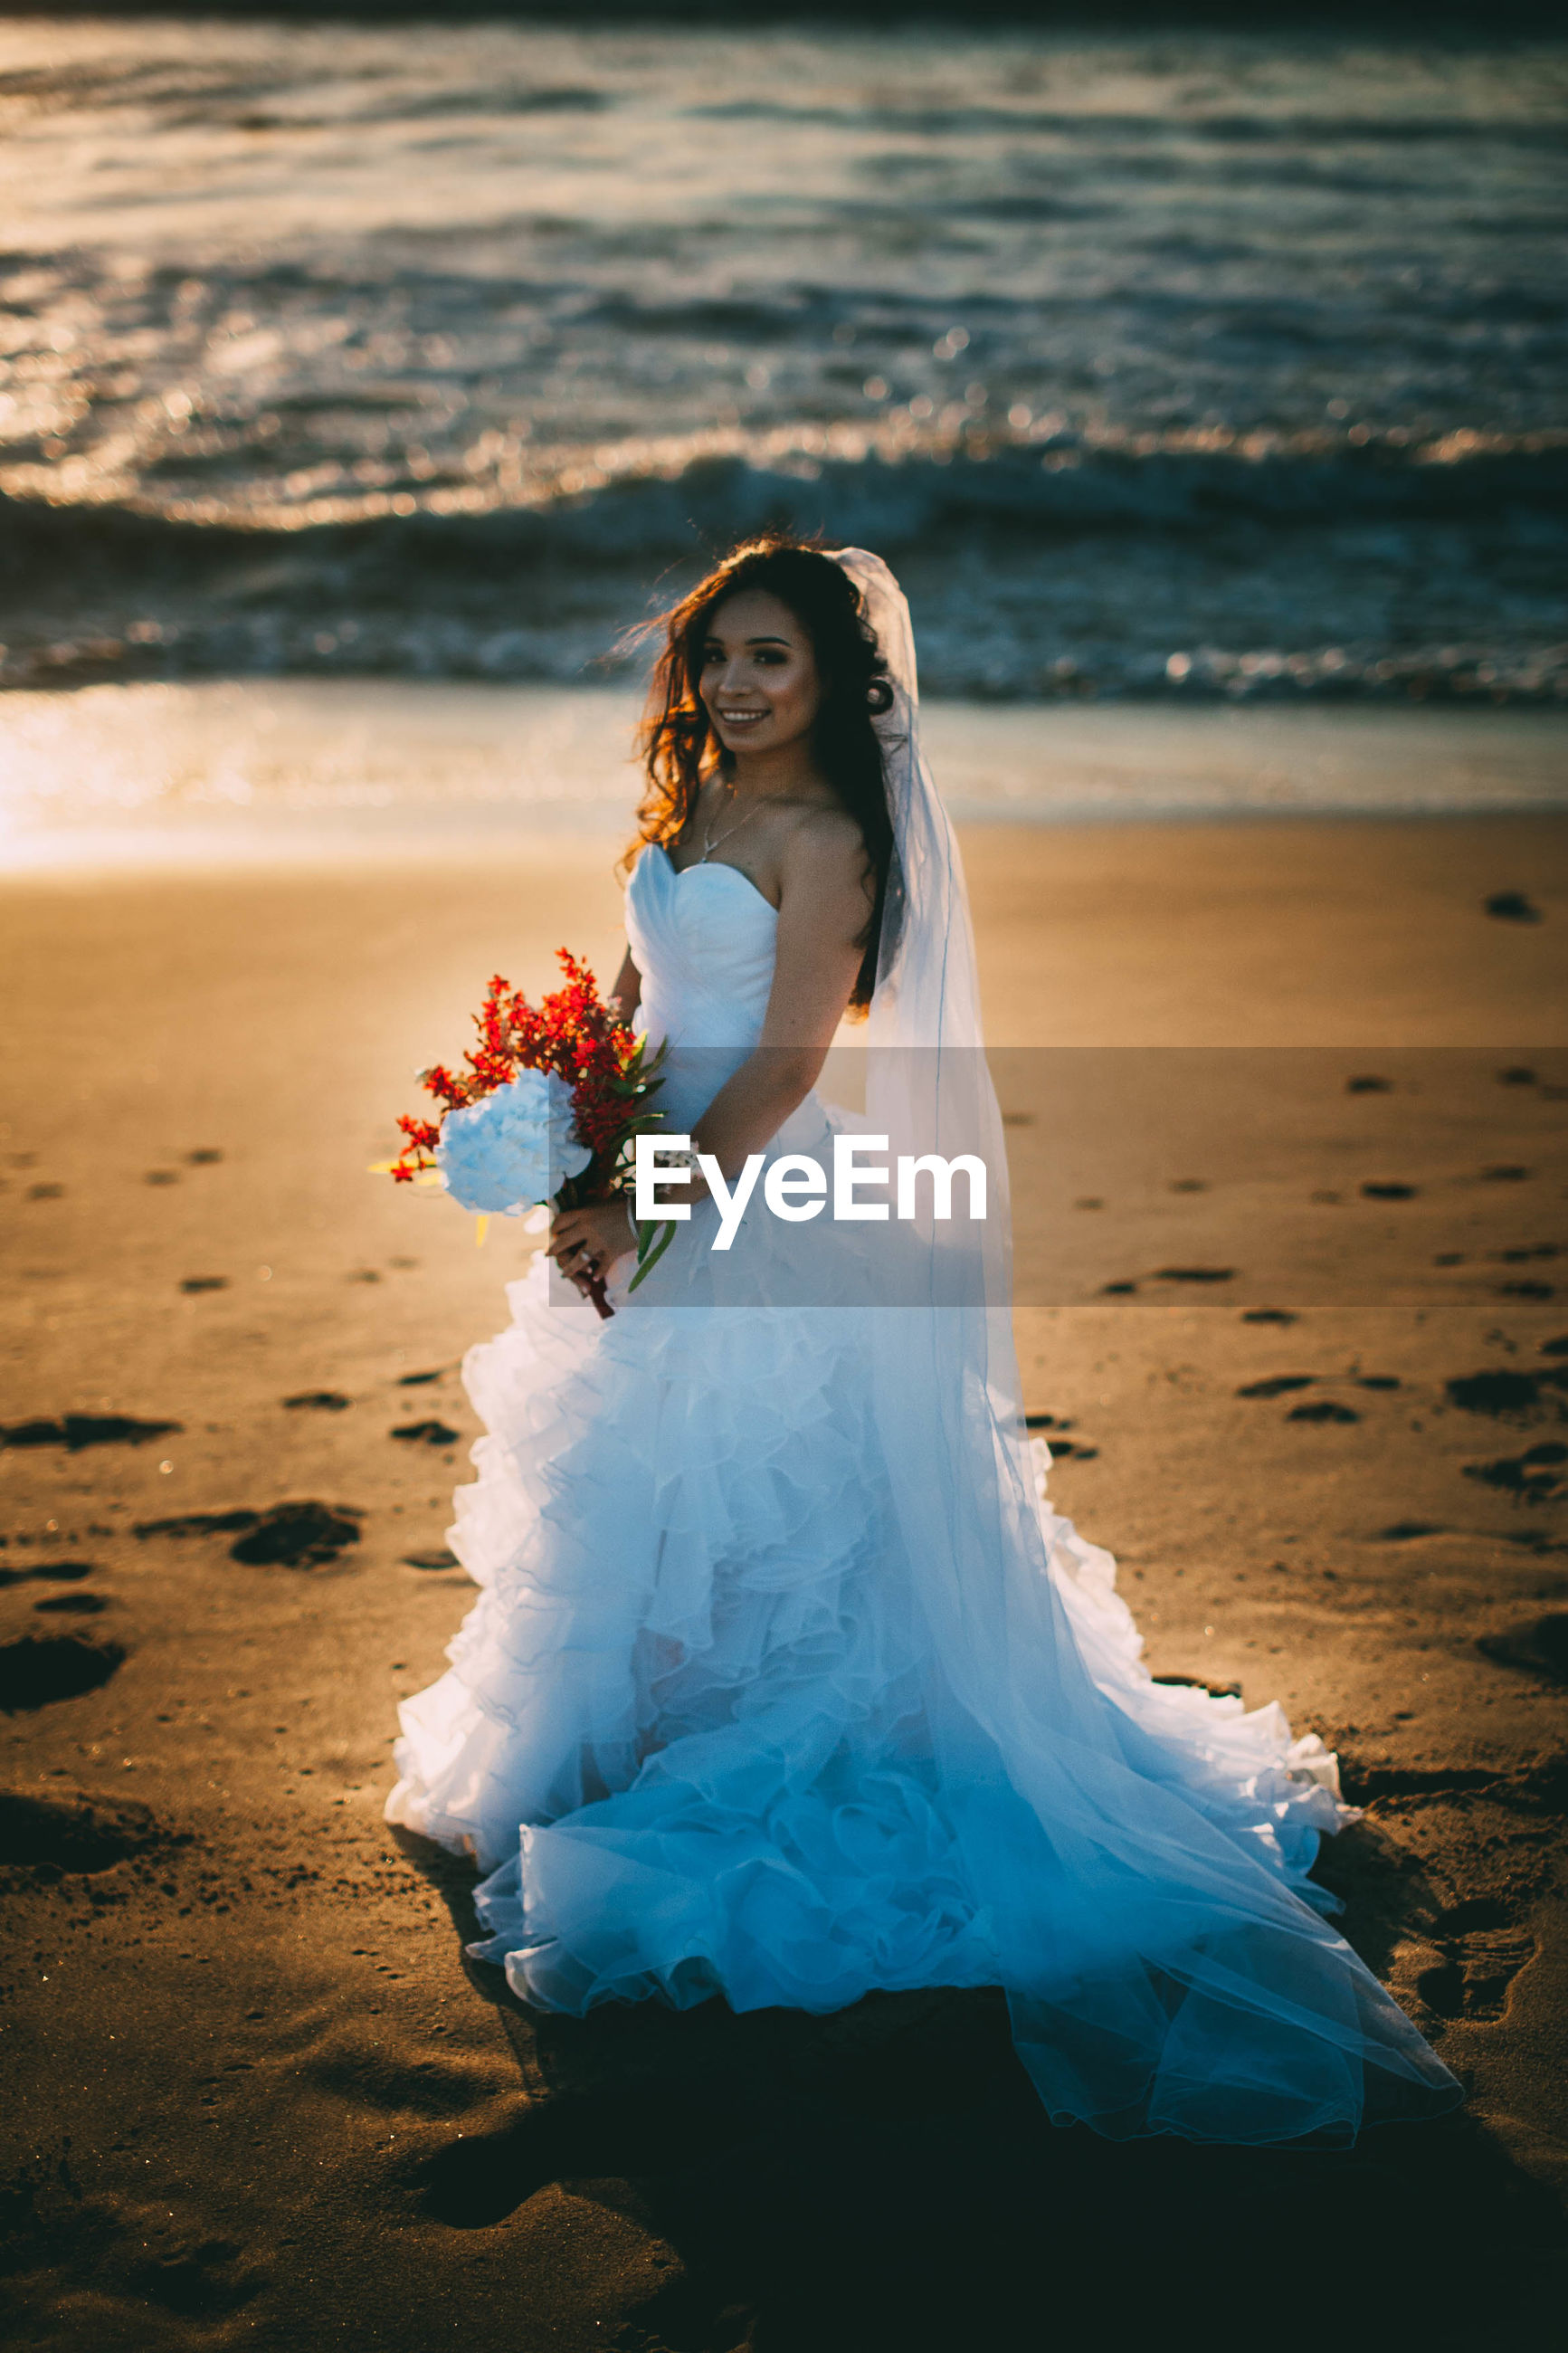 beach, real people, sea, shore, sand, wedding, bride, celebration, wedding dress, one person, life events, full length, women, lifestyles, young adult, front view, young women, water, outdoors, leisure activity, nature, standing, beauty in nature, day, beautiful woman, groom